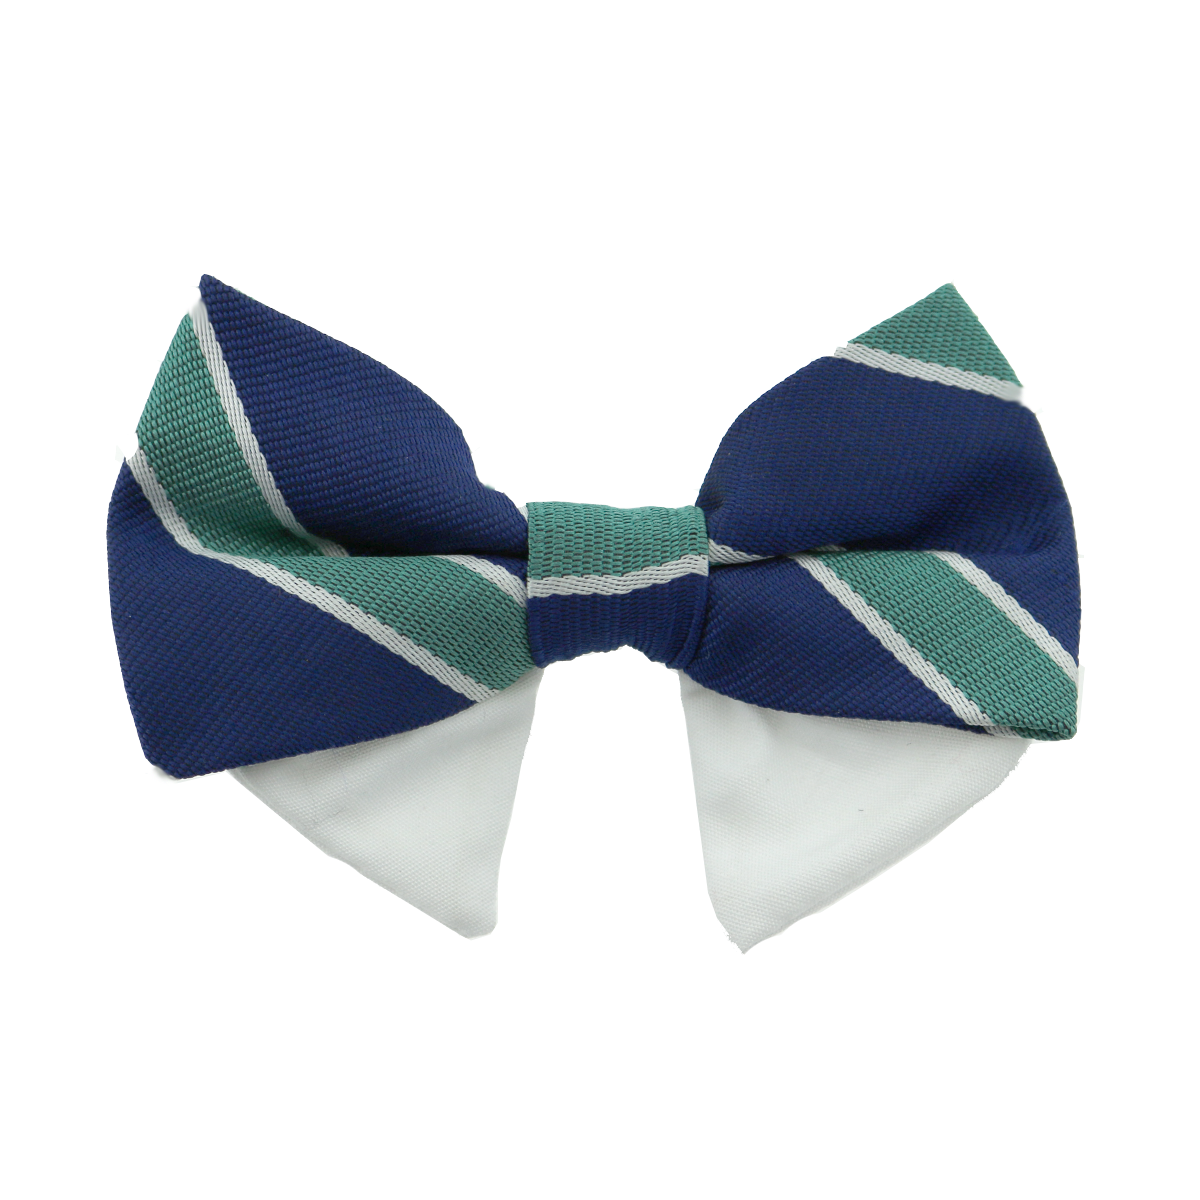 Universal Dog Bow Tie - Navy Blue and Green Stripe